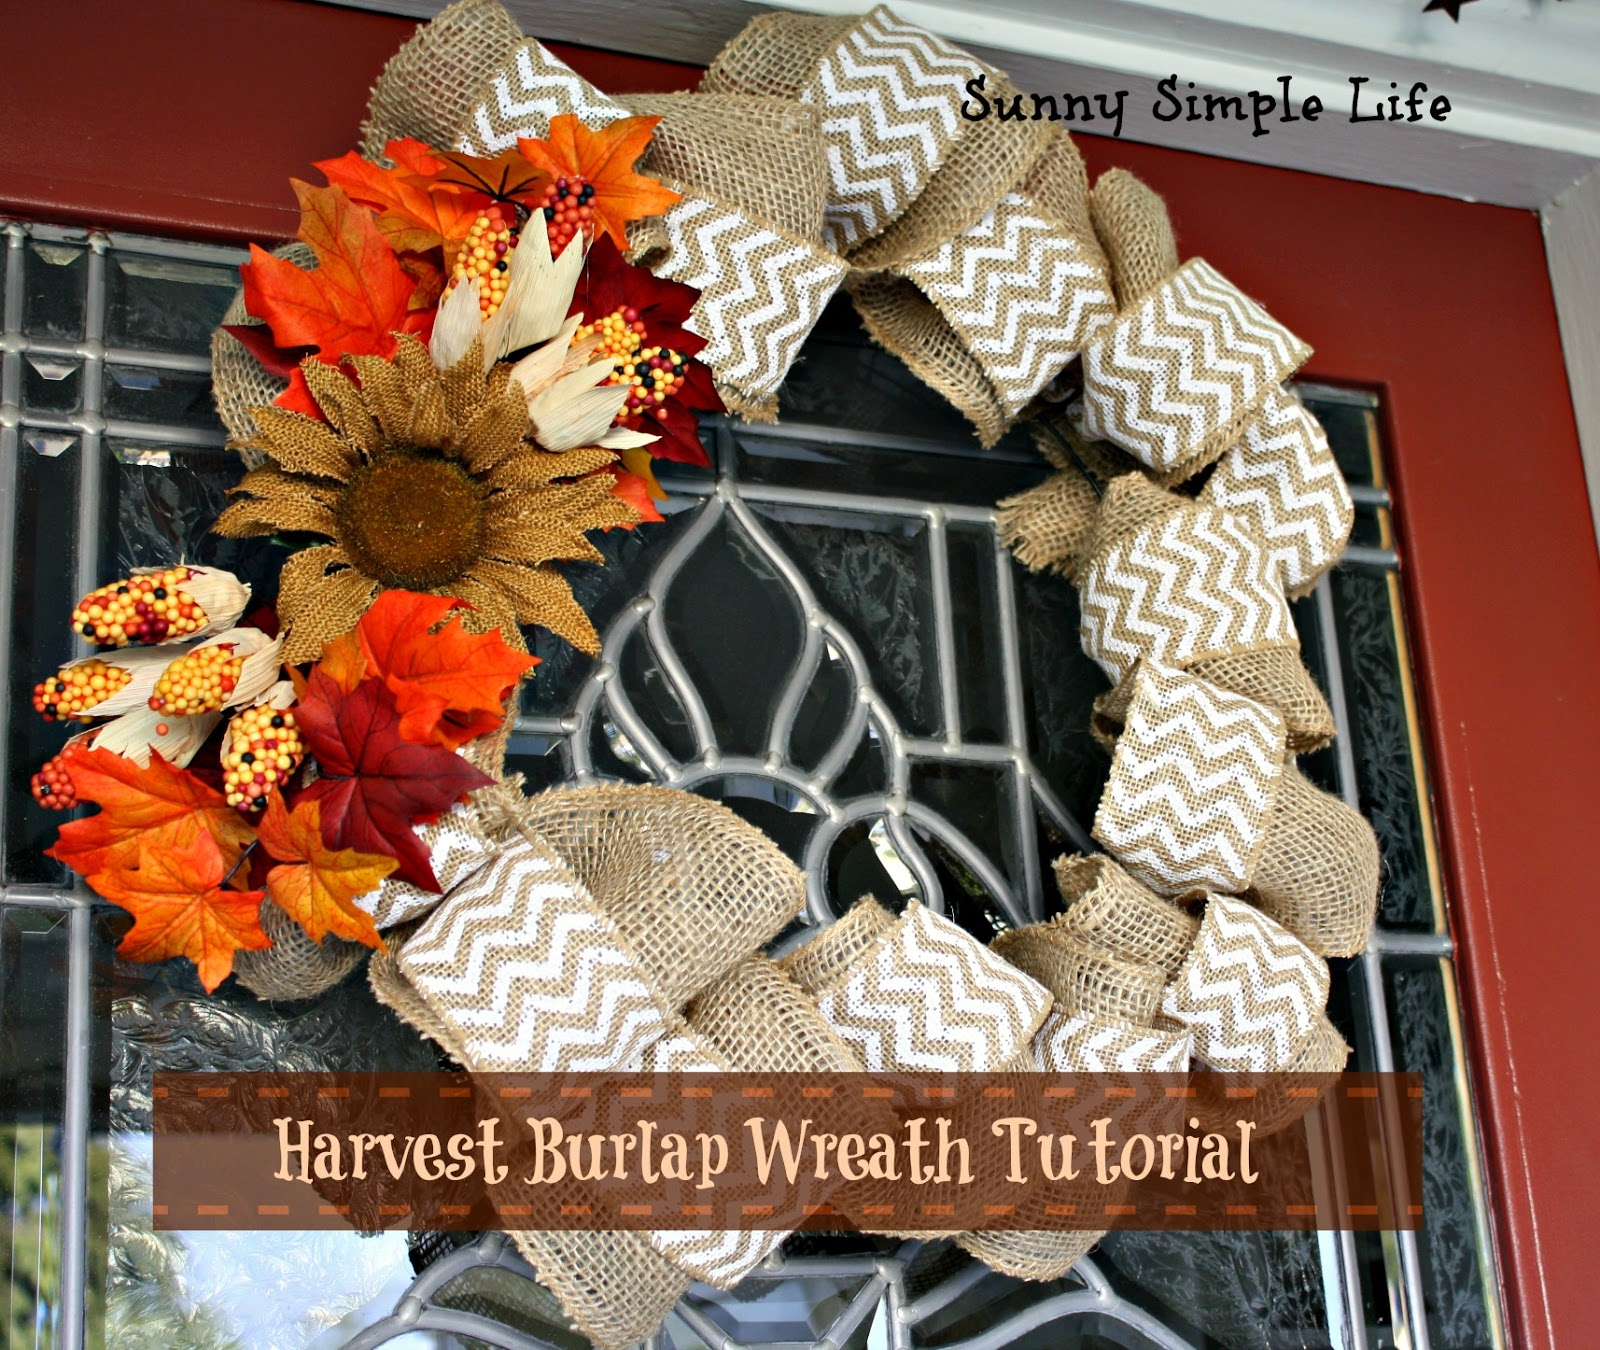 Sunny Simple Life Harvest Burlap Wreath Tutorial